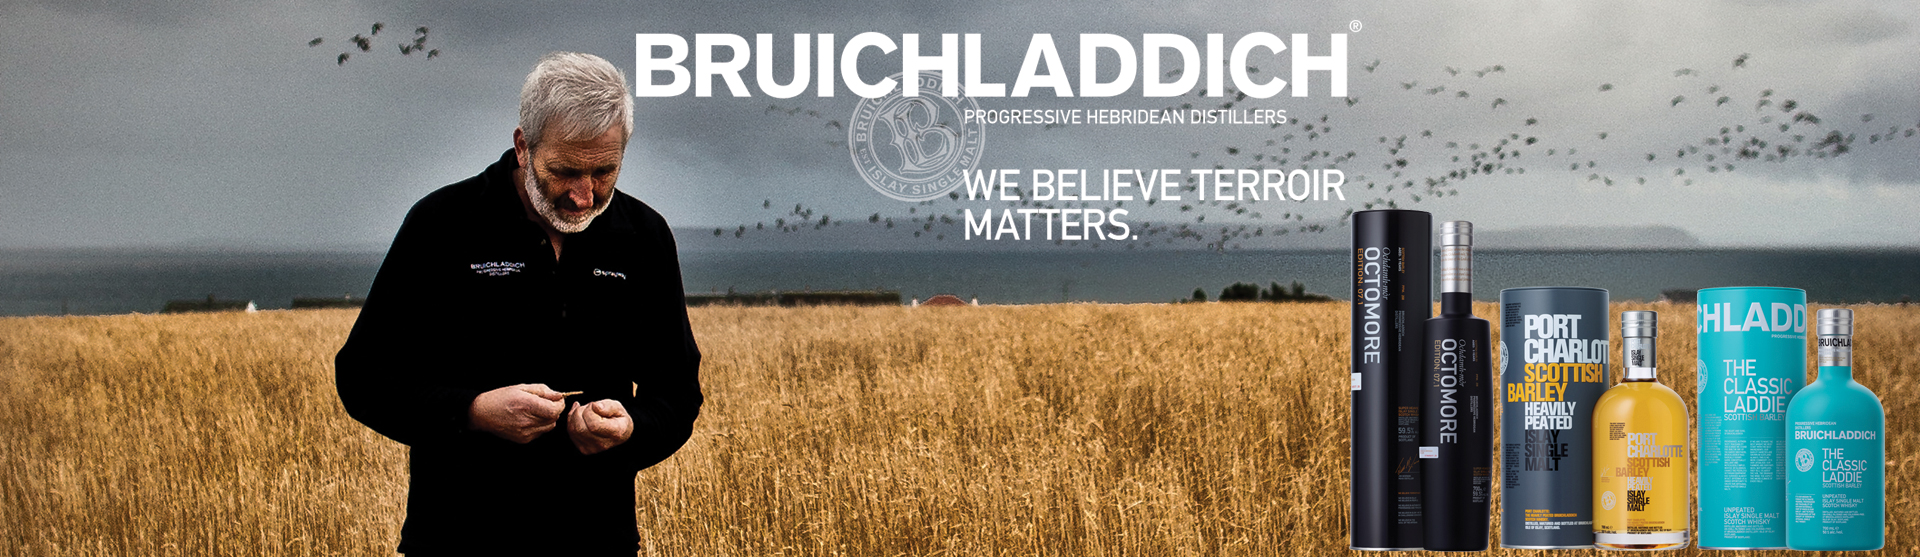 THE HOUSE OF BRUICHLADDICH